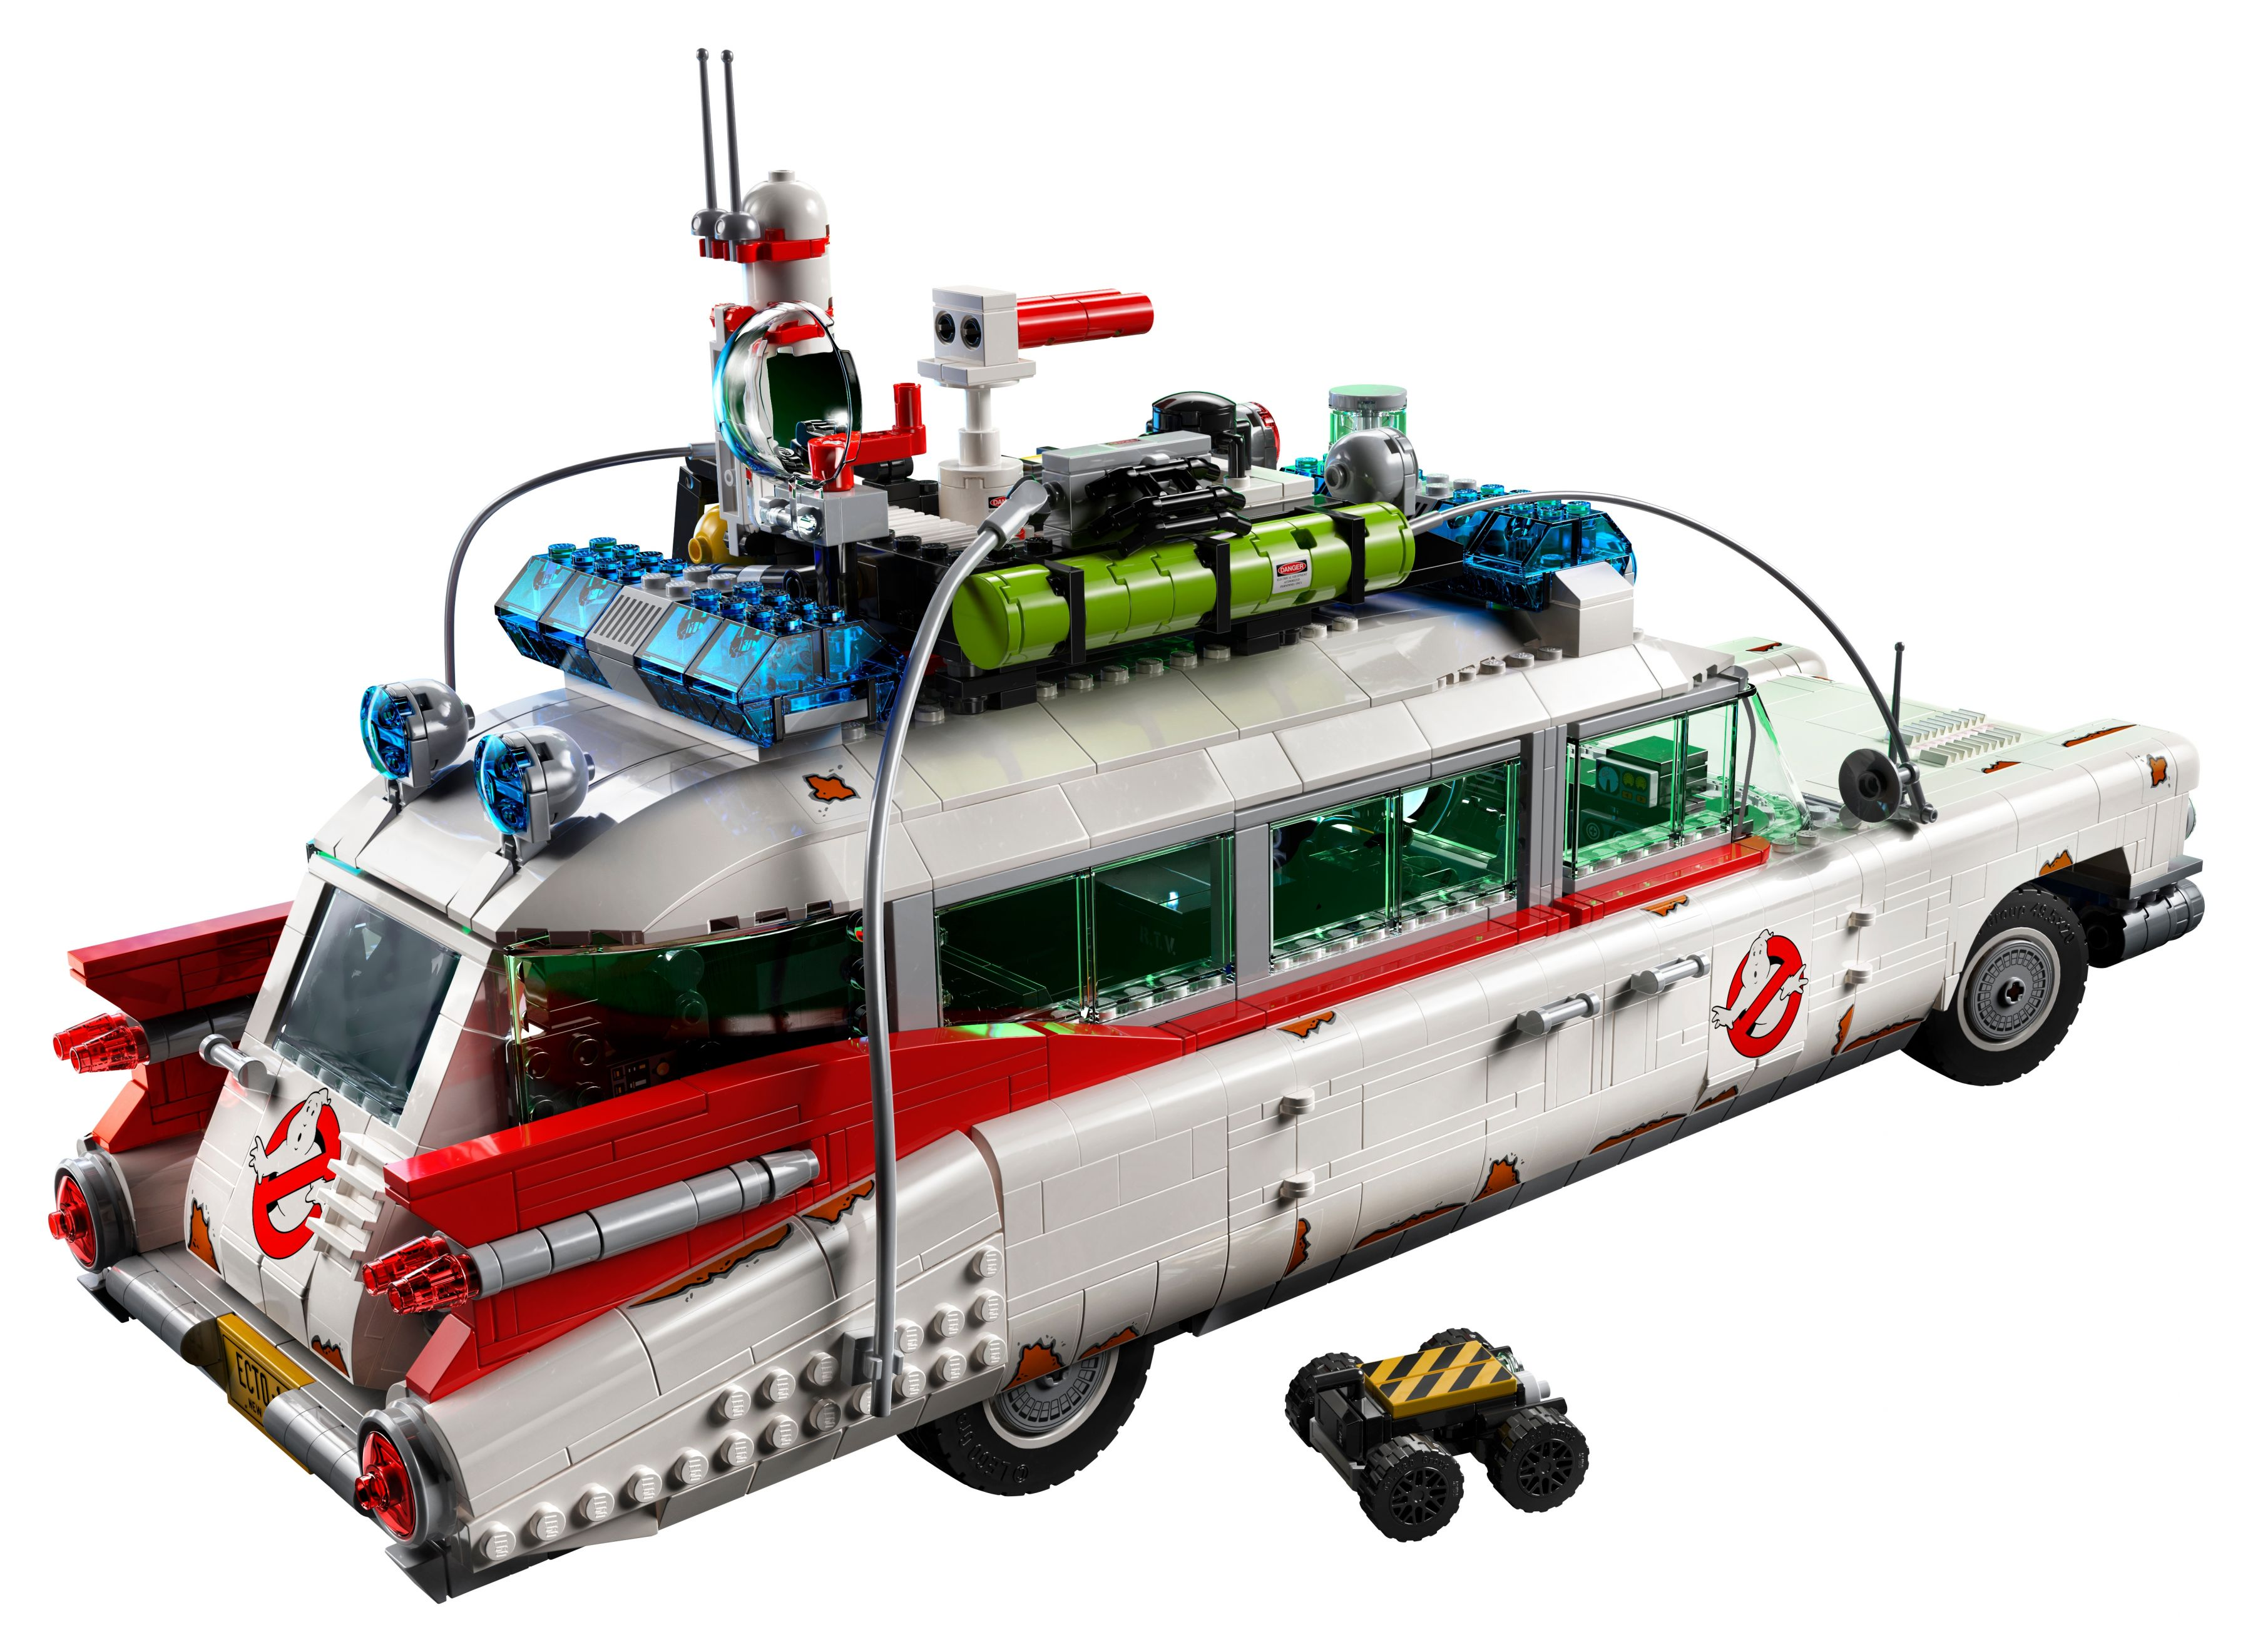 LEGO Advanced Models 10274 Ghostbusters™ ECTO-1 LEGO_10274_alt4.jpg